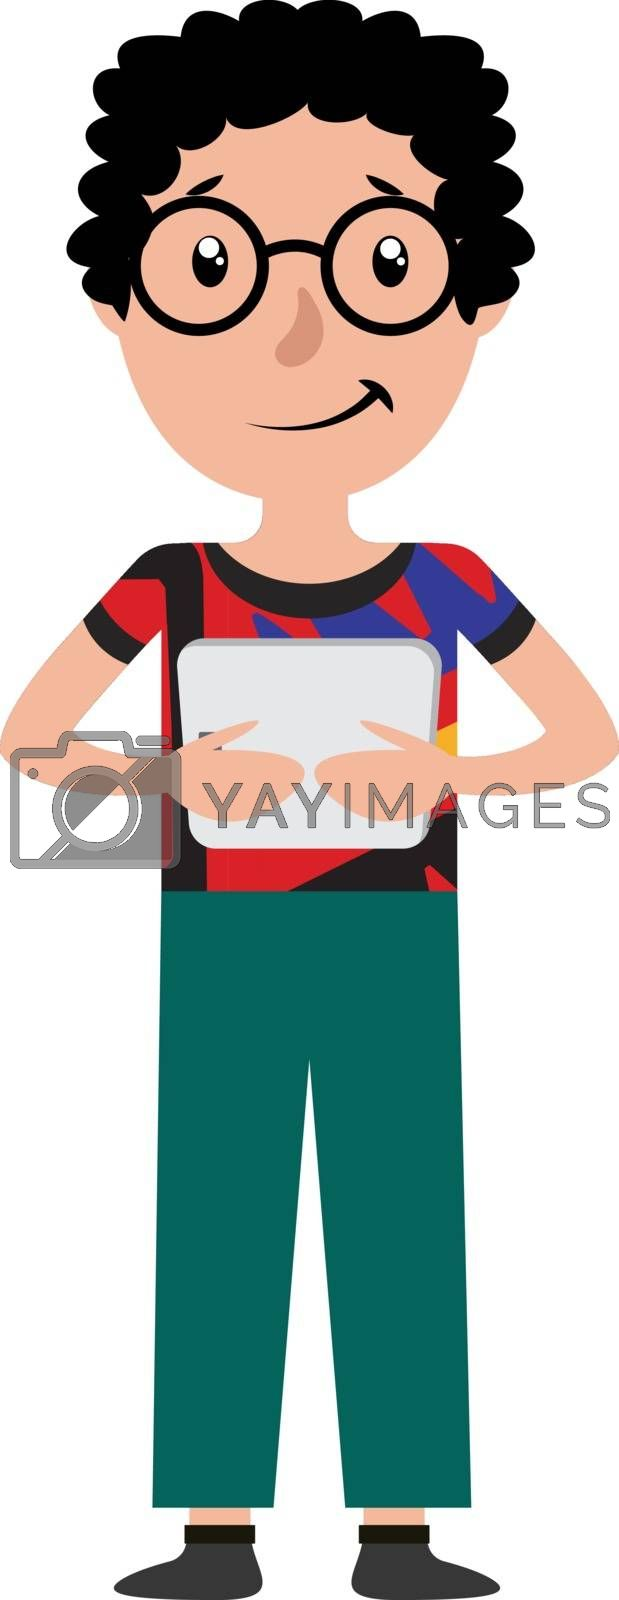 Royalty free image of Cartoon teen boy holding the tablet illustration vector on white by Morphart